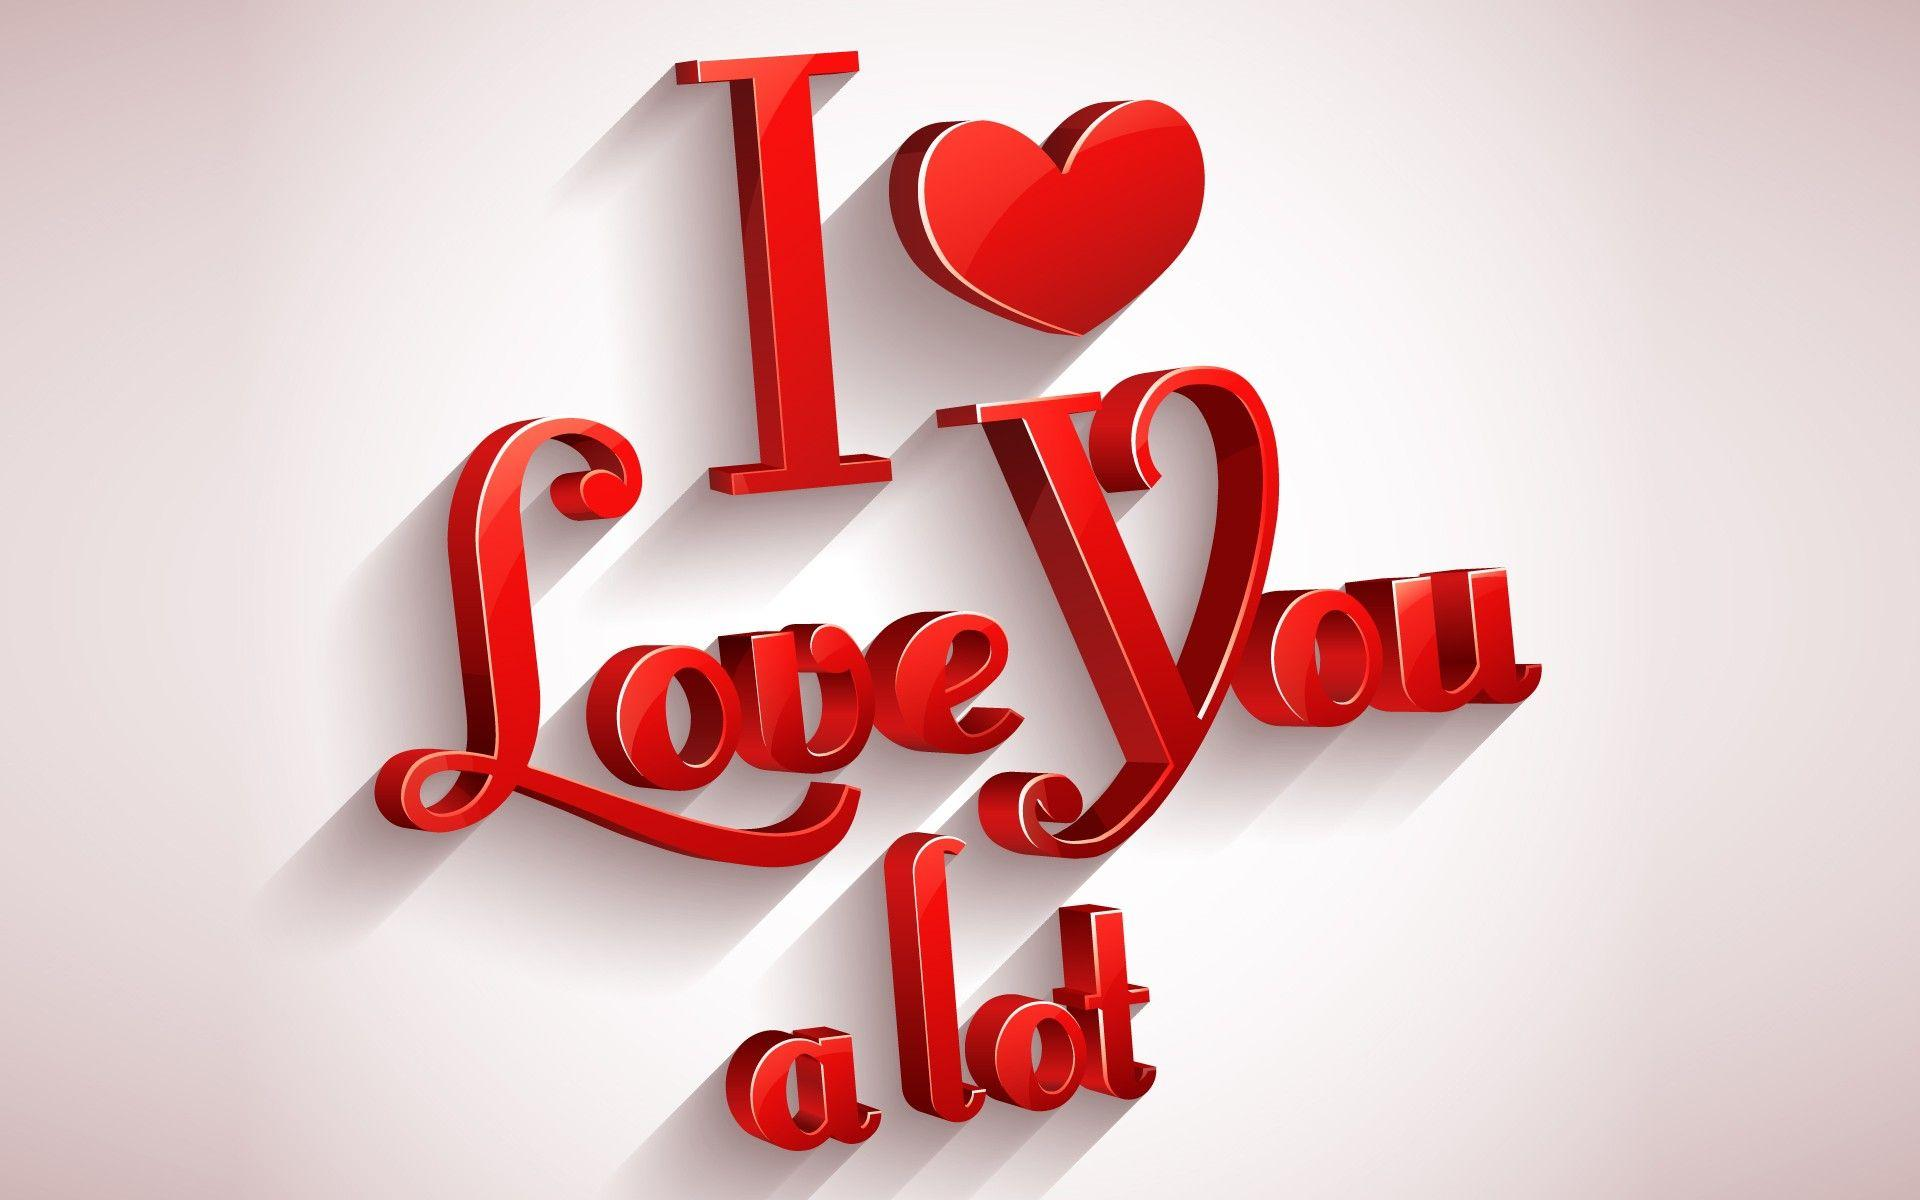 I Love You Hd Wallpapers Free Download - Wallpaper Rocket